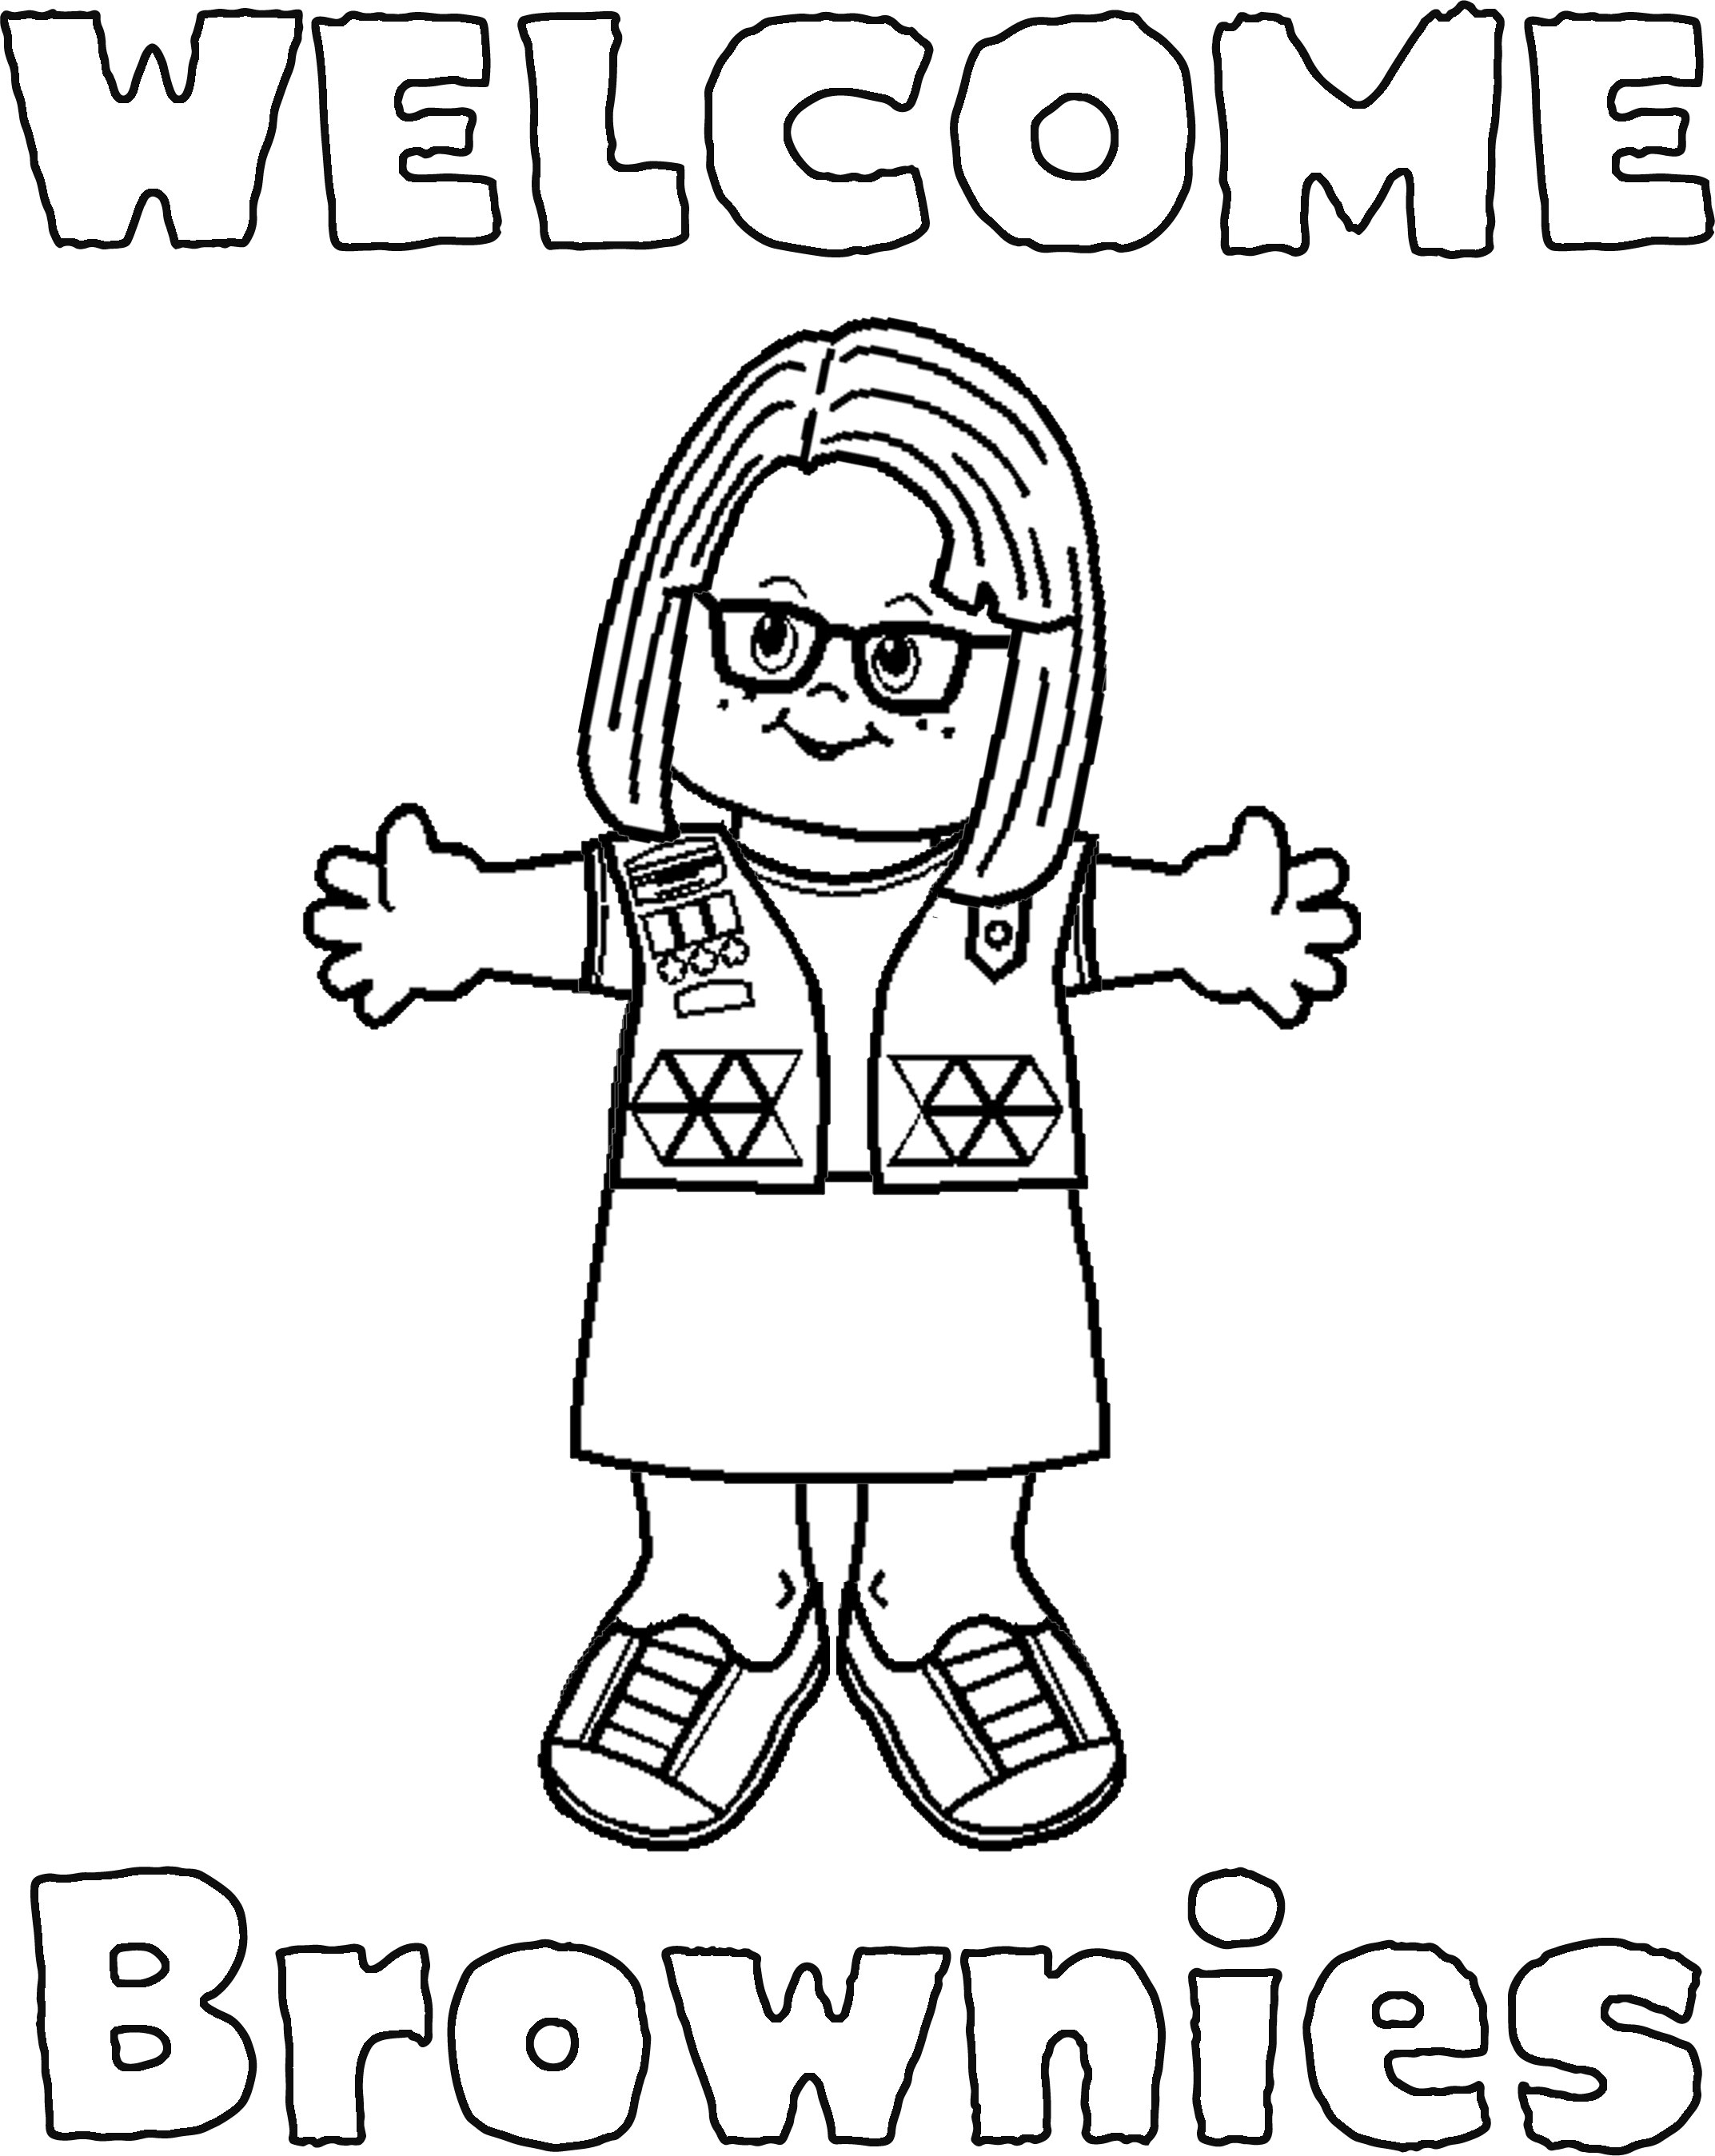 Meme Coloring Pages At Getcolorings